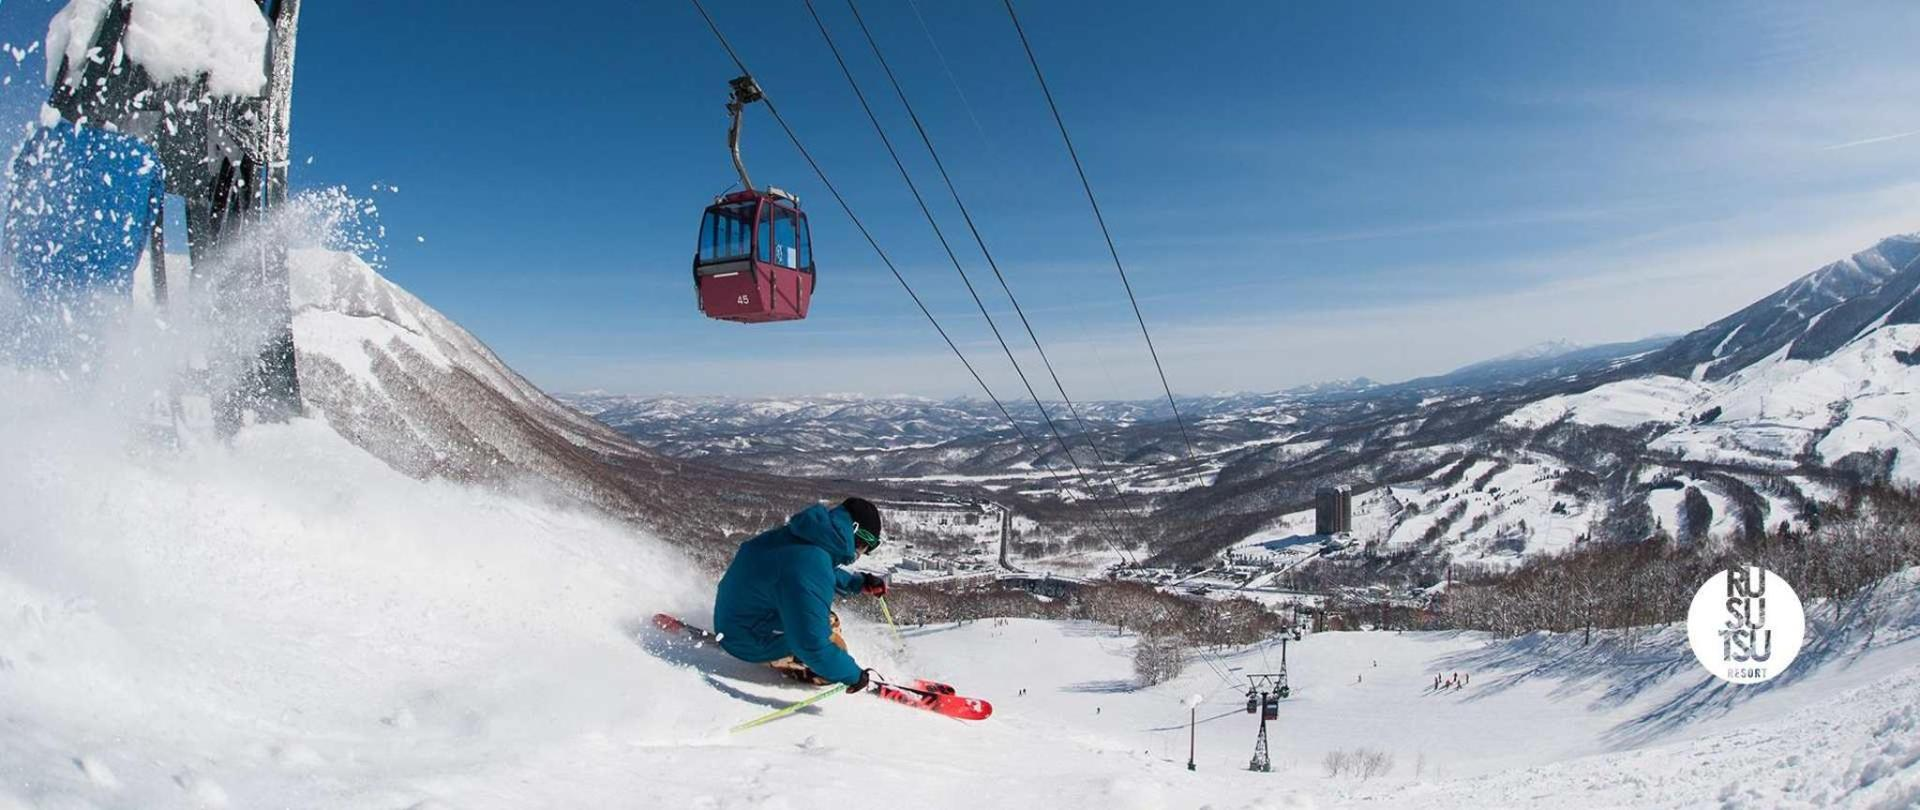 7- winter_banner-20171004-chairlift.jpg.1920x810_default.jpeg